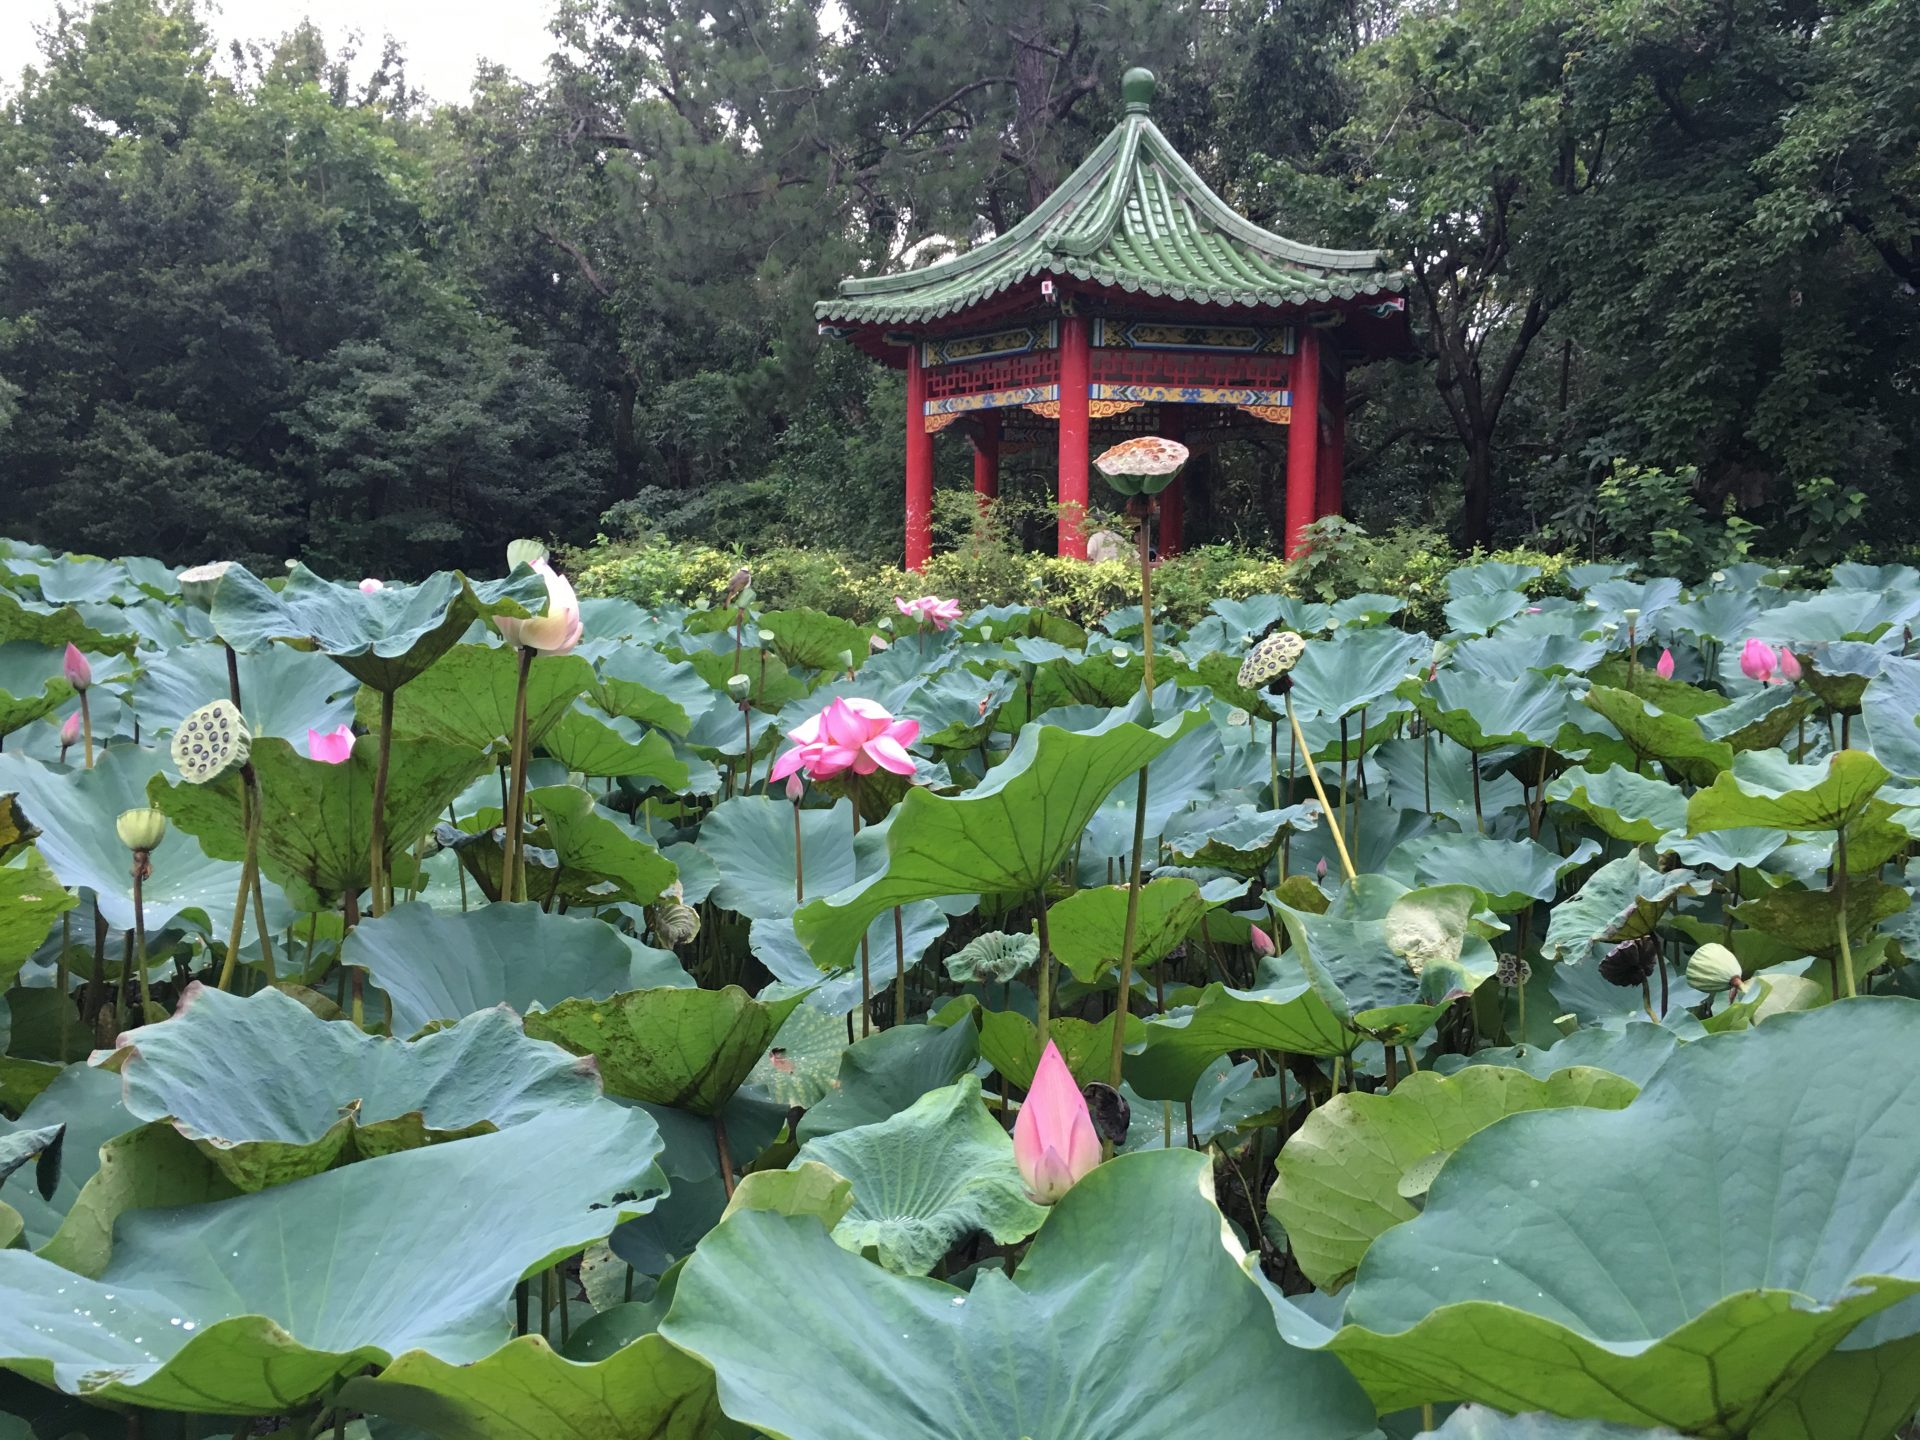 The blossoming lotus flowers in the lotus pond of Taipei Botanical Garden (Image: Courtesy of Terry Lee)